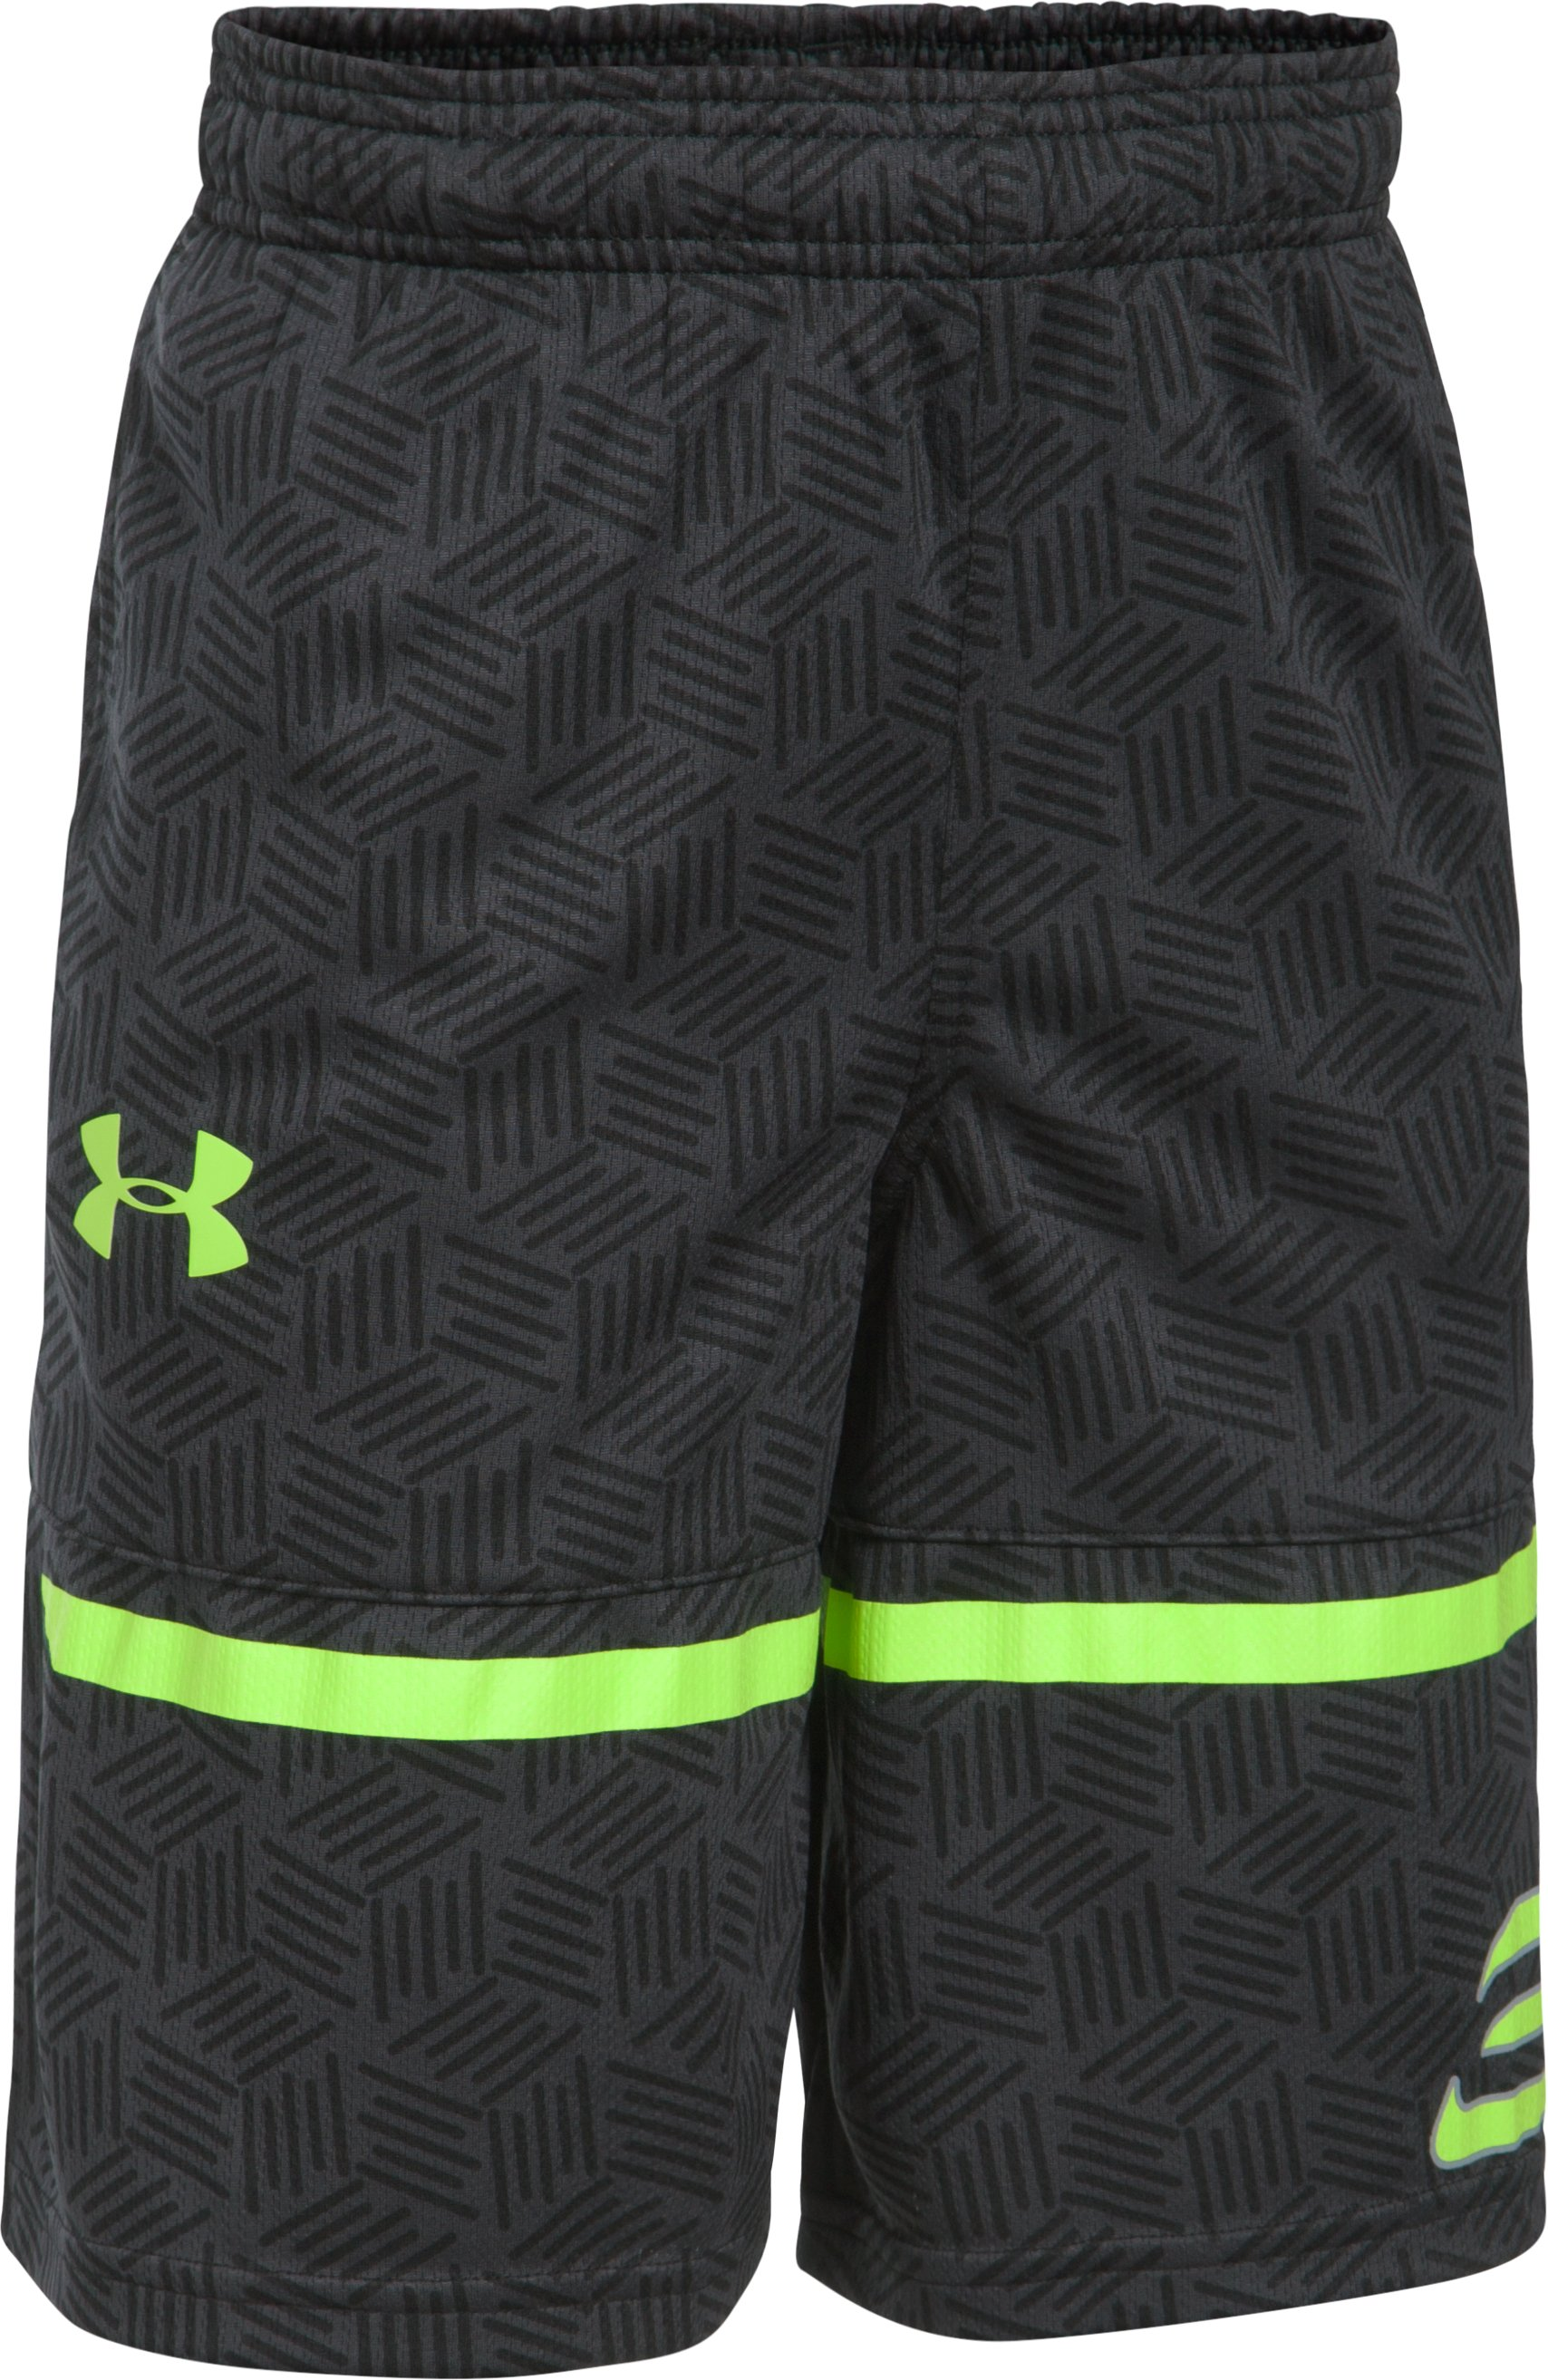 Boys' SC30 Printed Spear Shorts, Black ,